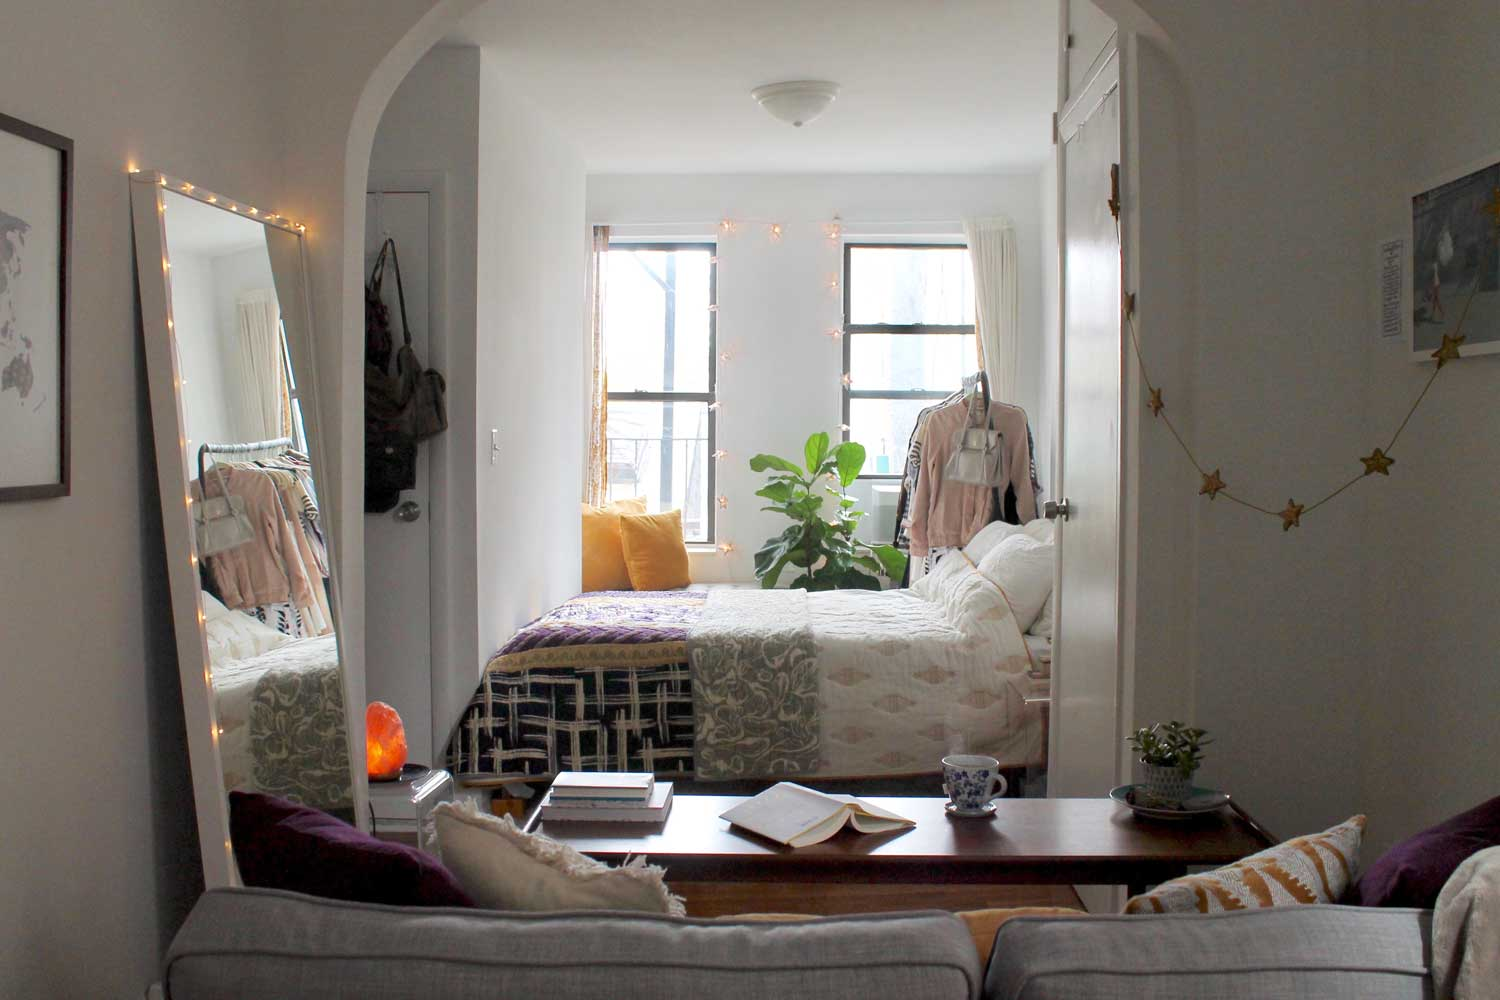 How To Find An Apartment In NYC Via